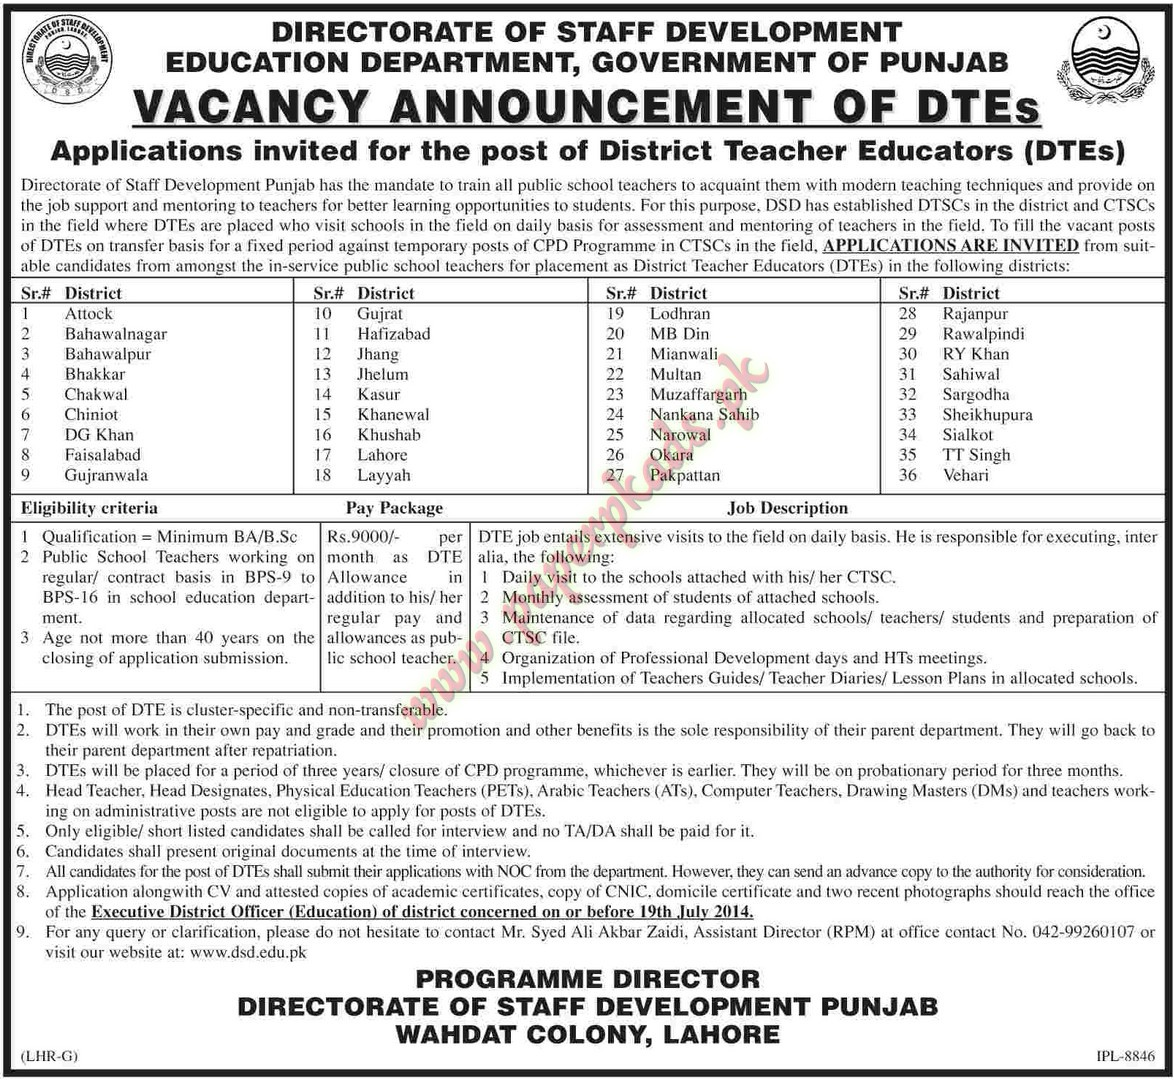 Directorate of Staff Development Education Department Government of Punjab Jobs